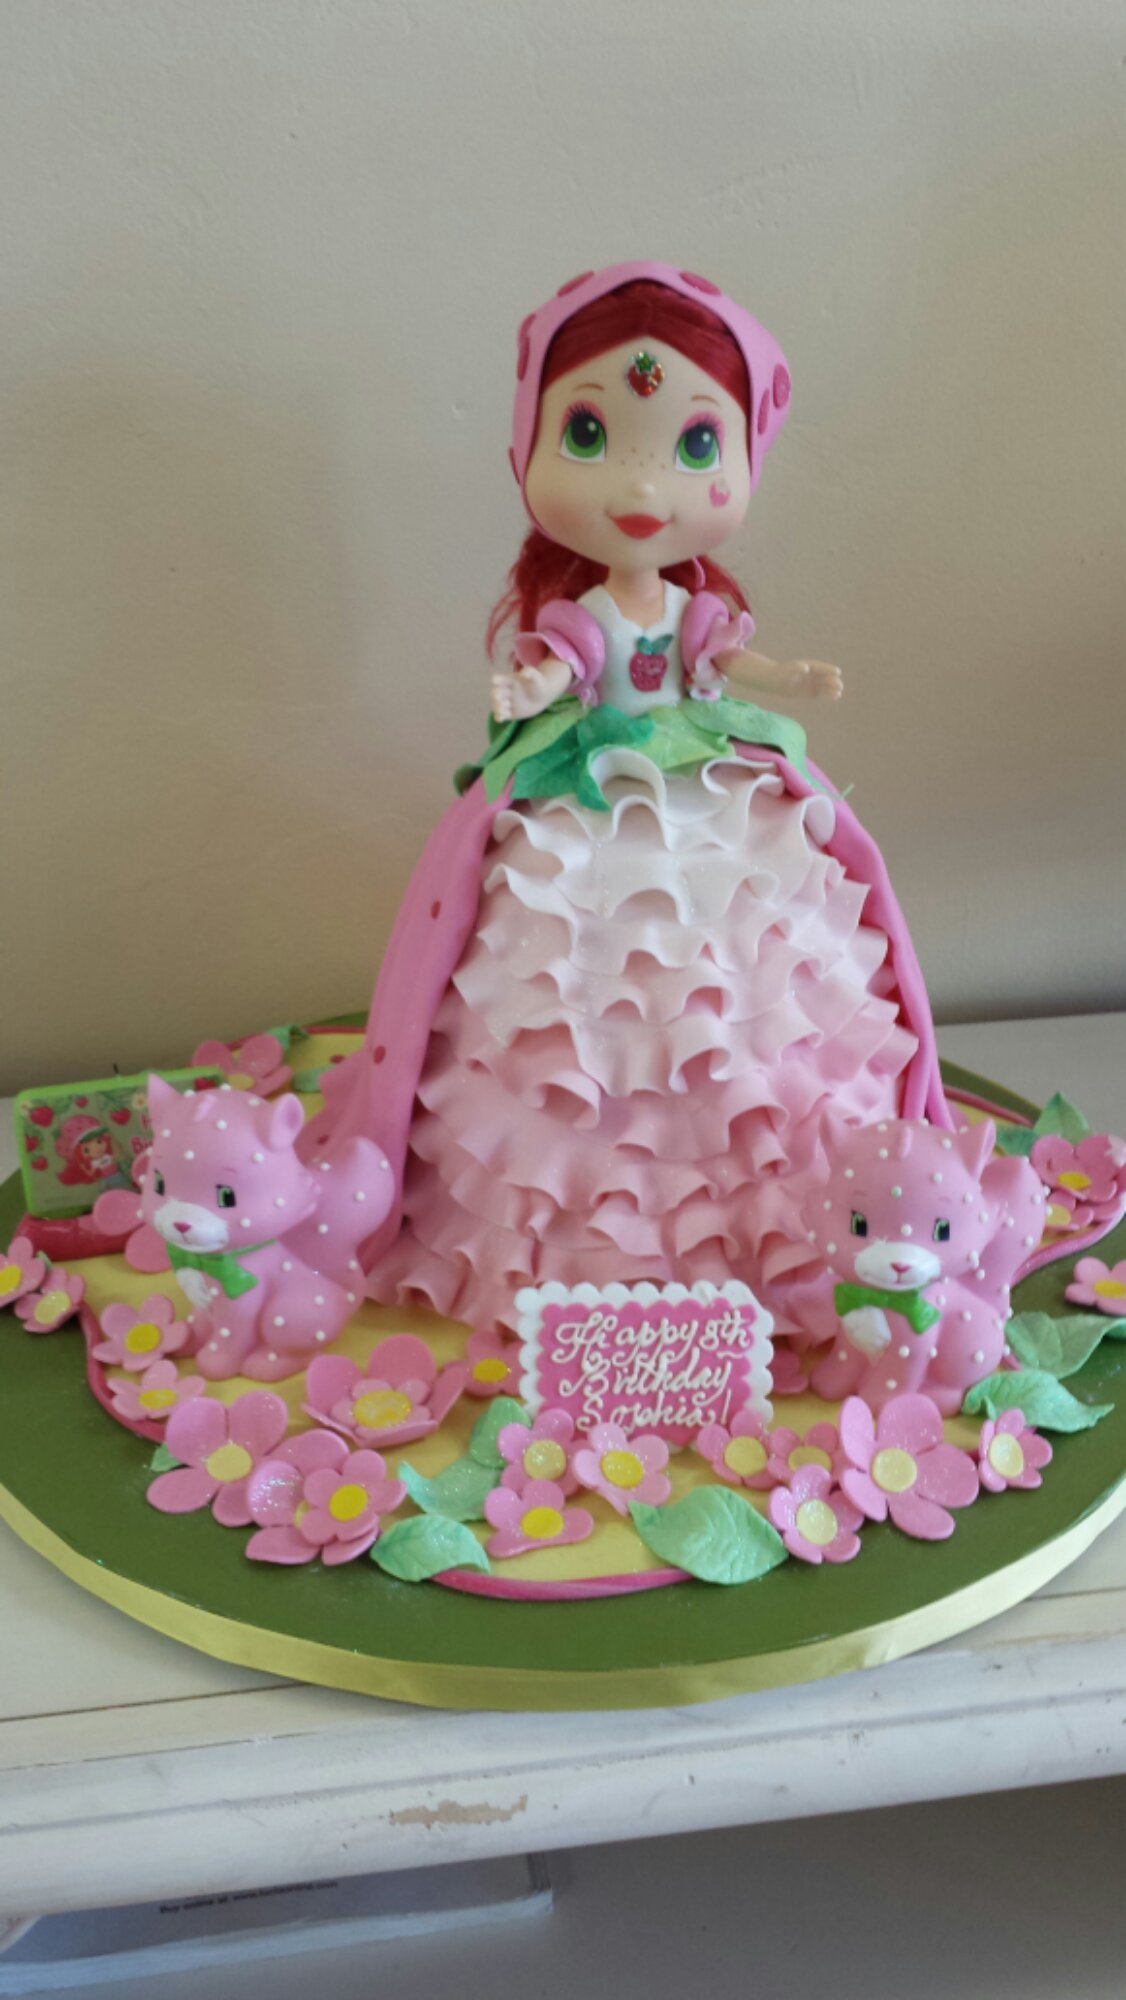 Cake Designs Pembroke Pines : Sweet Art by Lucila   Heaven in a cake! Edible Reflections